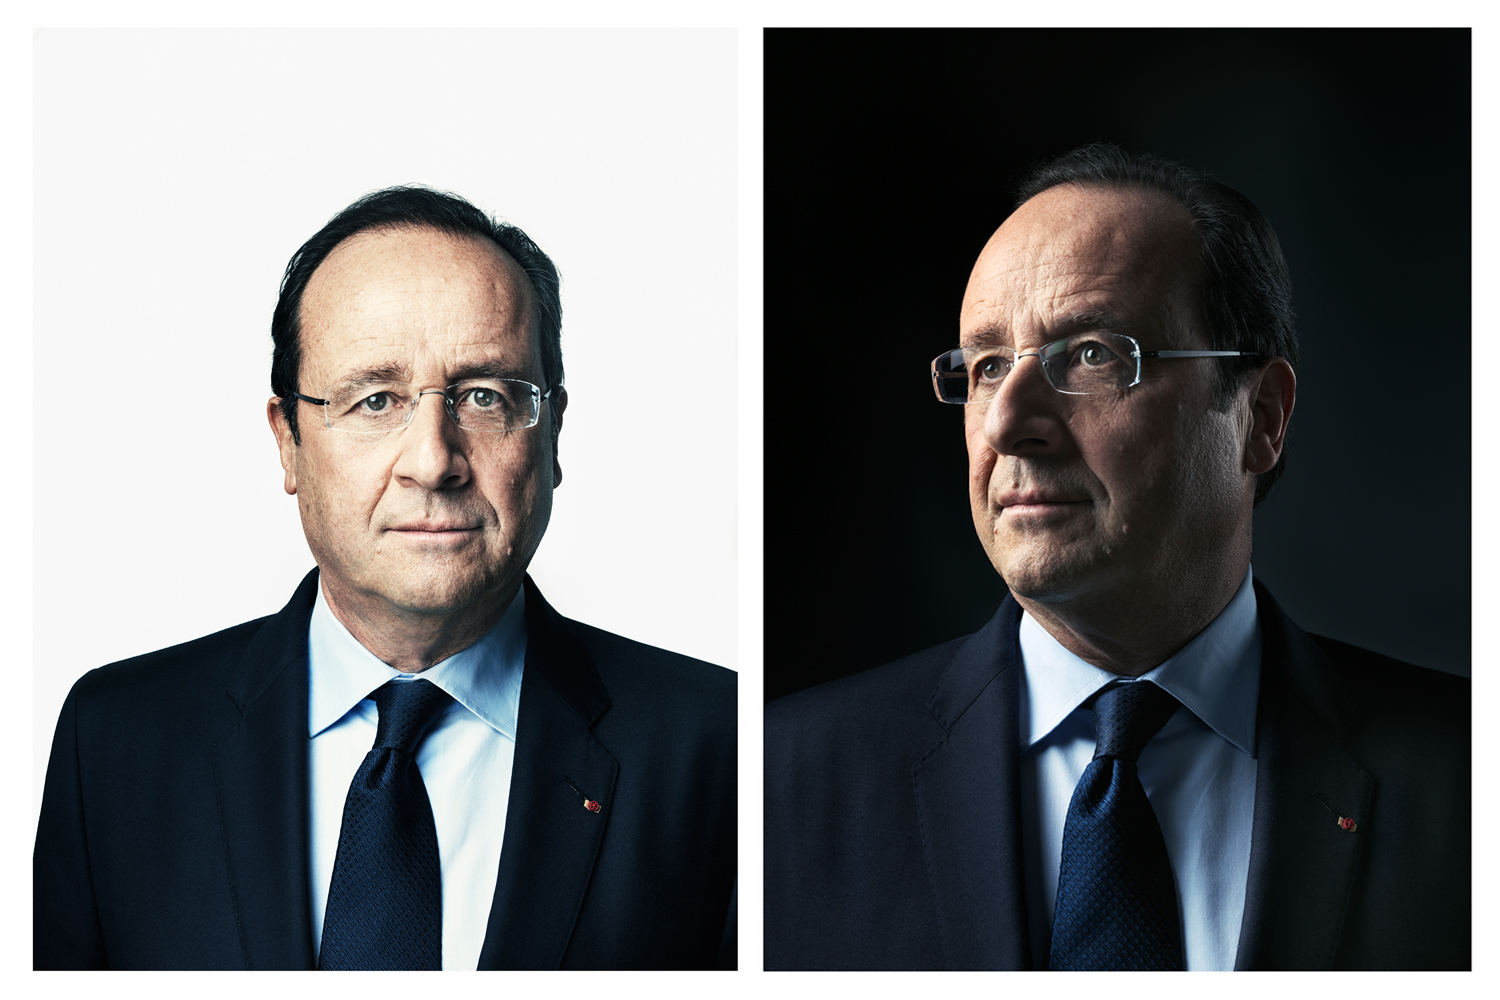 January 2014. Two portraits of France's President François Hollande at the presidential Élysée Palace in Paris.